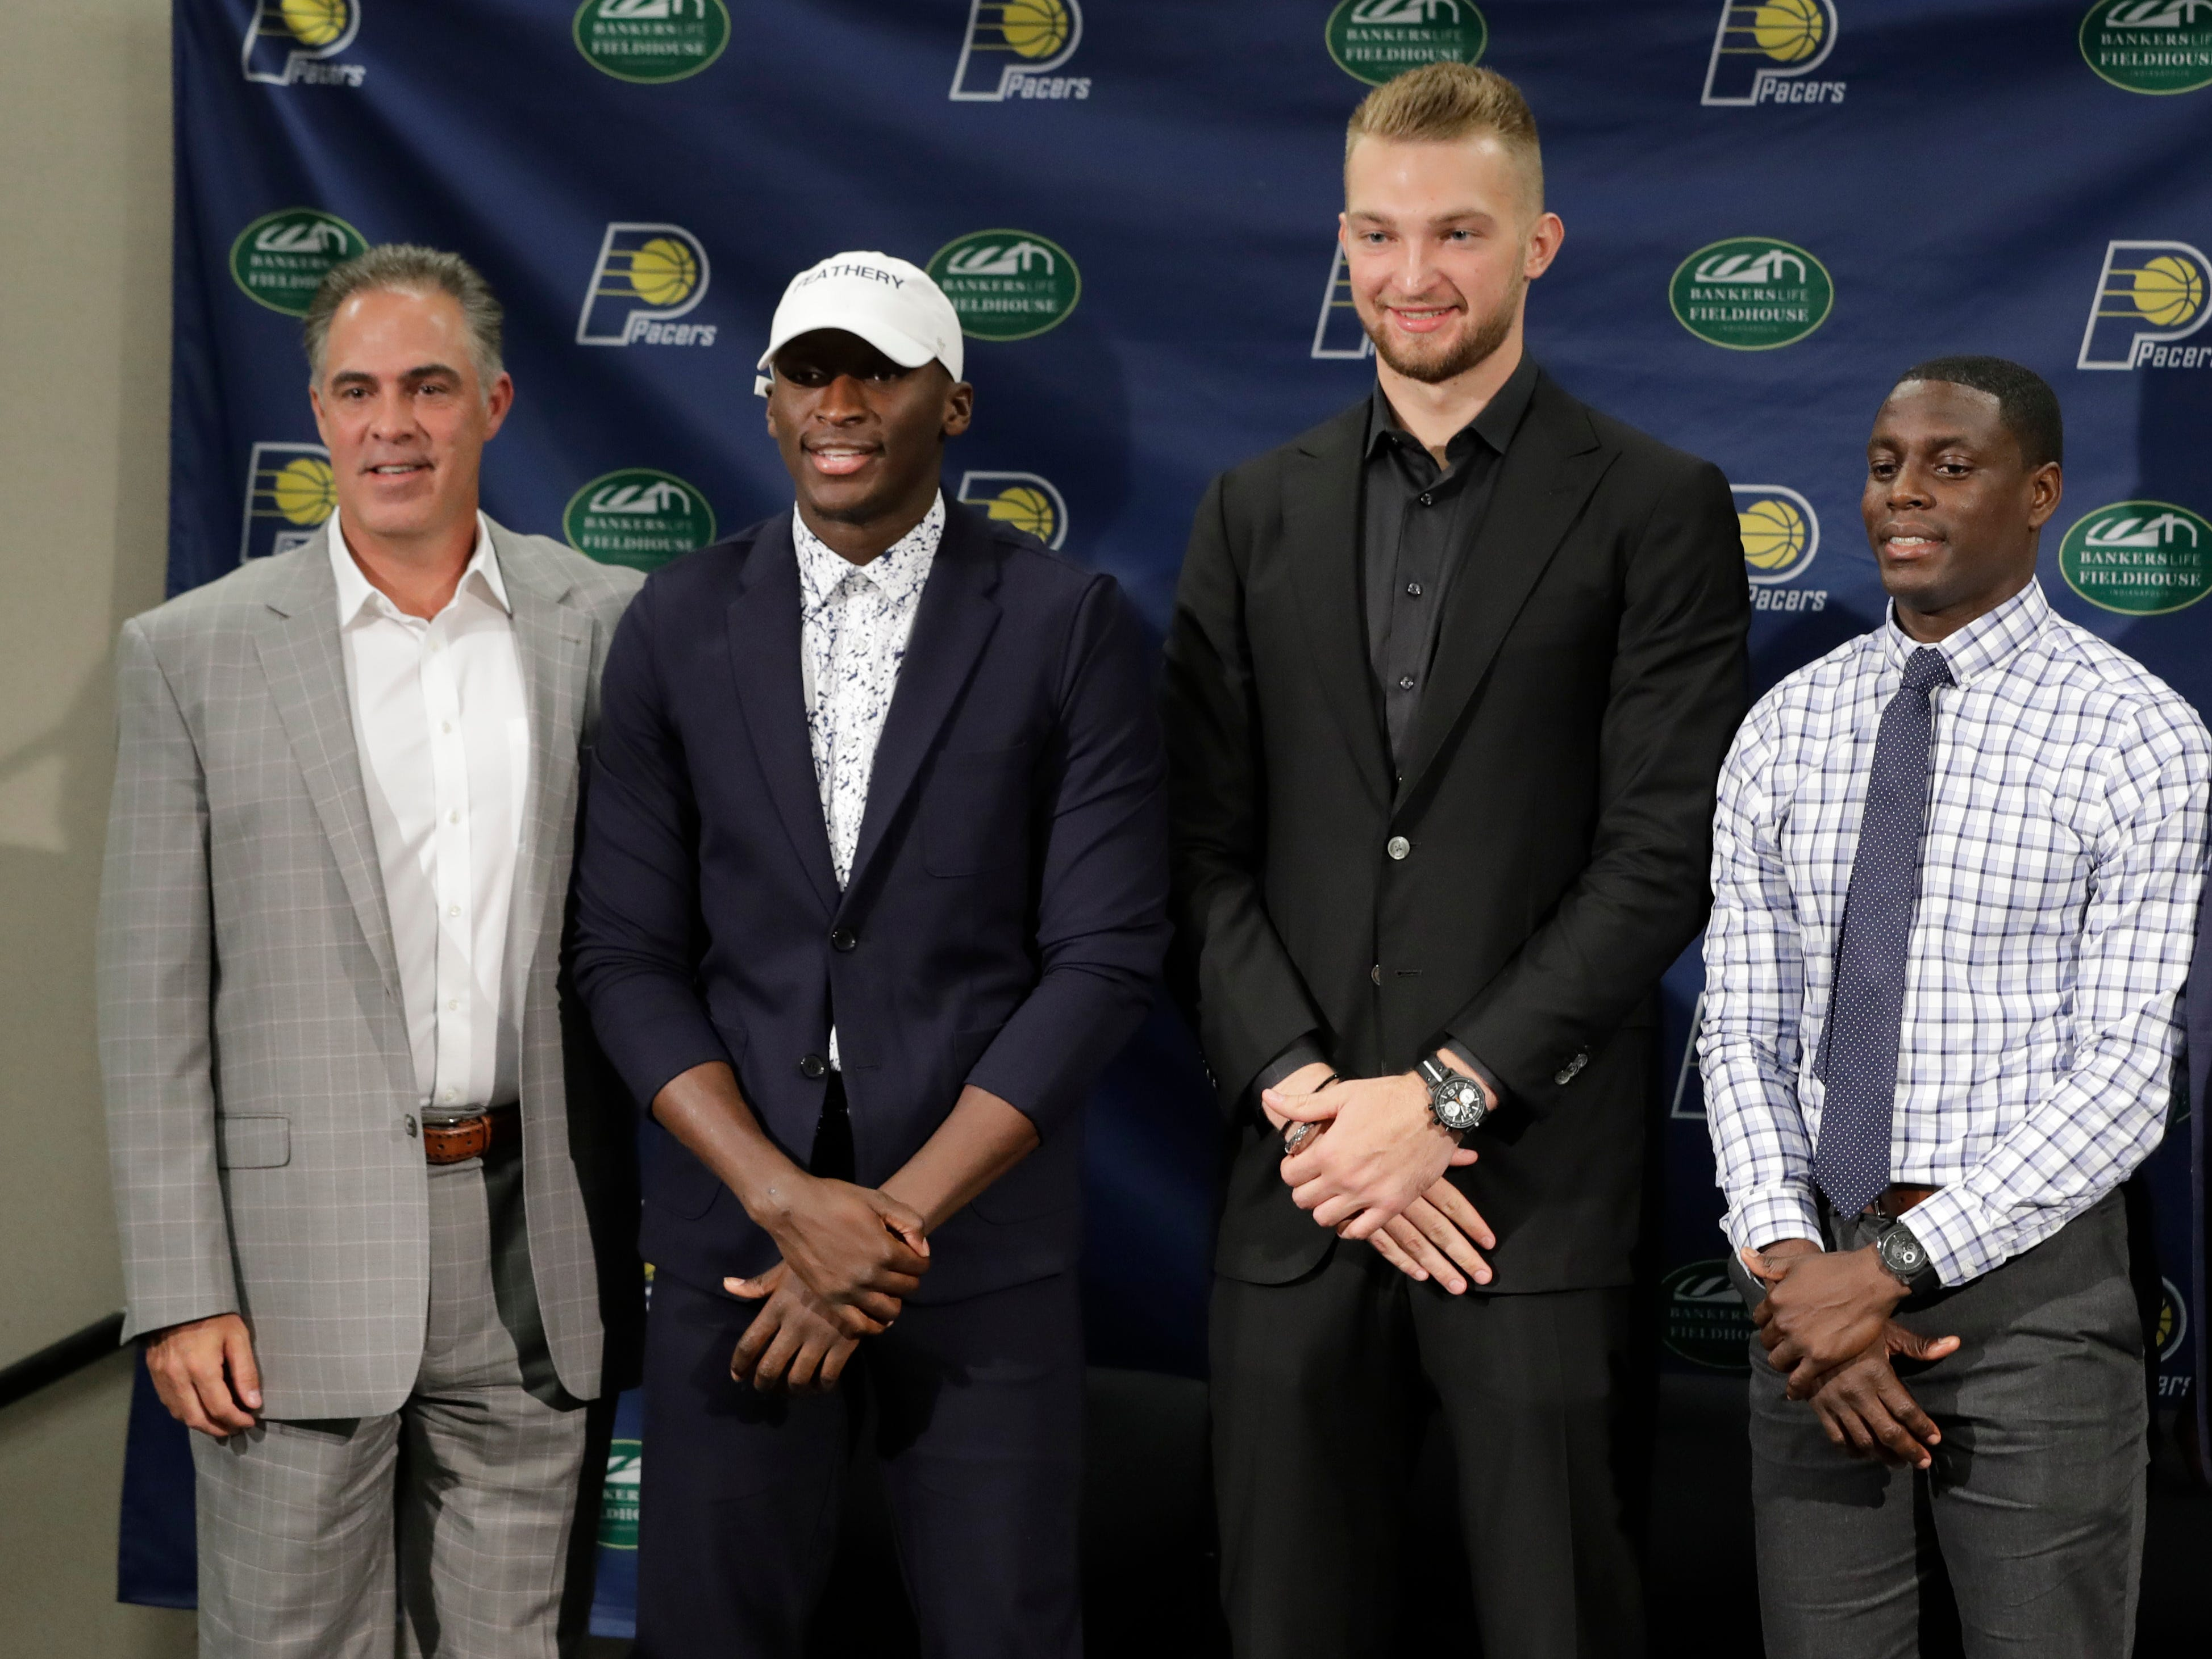 Indiana Pacers general manager Kevin Pritchard, Victor Oladipo, Domantas Sabonis, Darren Collison and head coach Nate McMillan, from left, pose for a photo during a news conference.